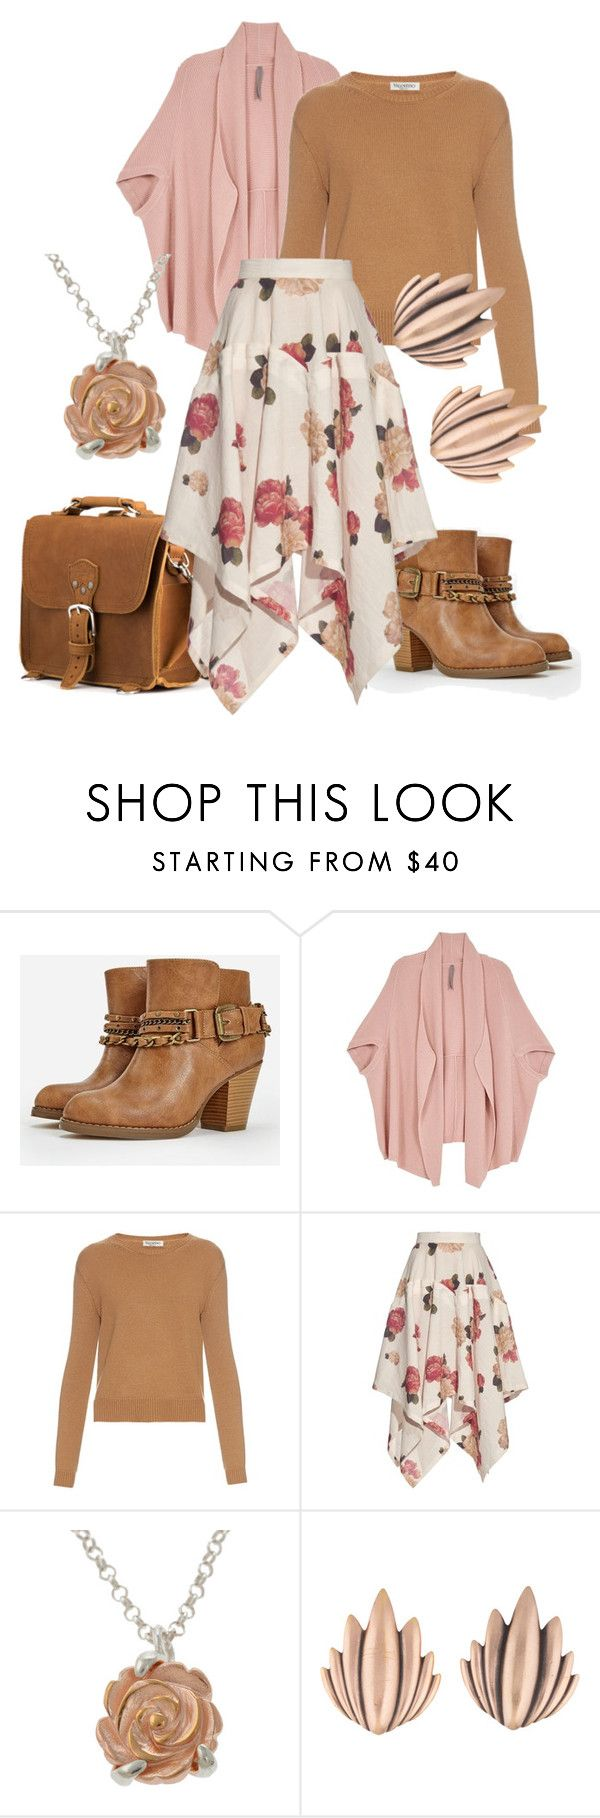 """Sprall"" by emiade ❤ liked on Polyvore featuring JustFab, Melissa McCarthy Seven7, Valentino, A.W.A.K.E., Claire Hart Design, Yves Saint Laurent and plus size clothing"